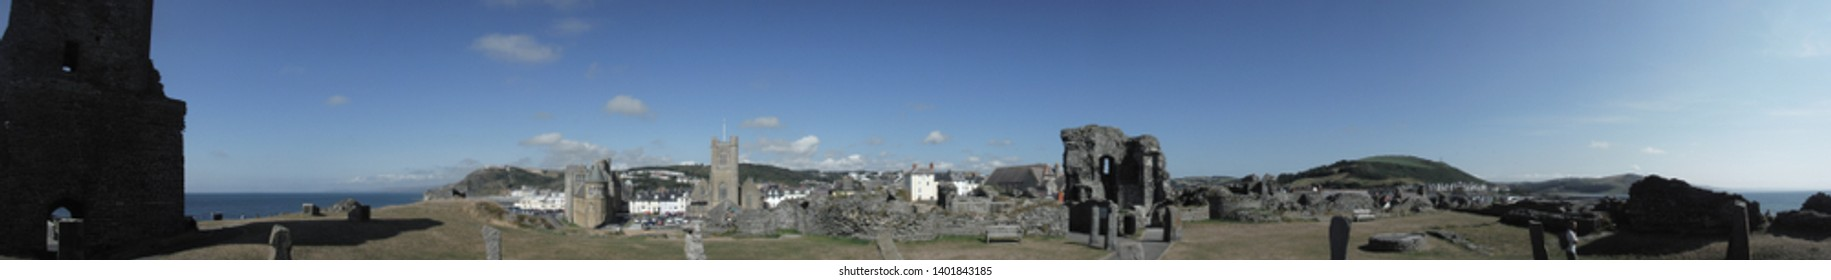 Panorama of Aberystwyth castle ruins on the seafront in Wales